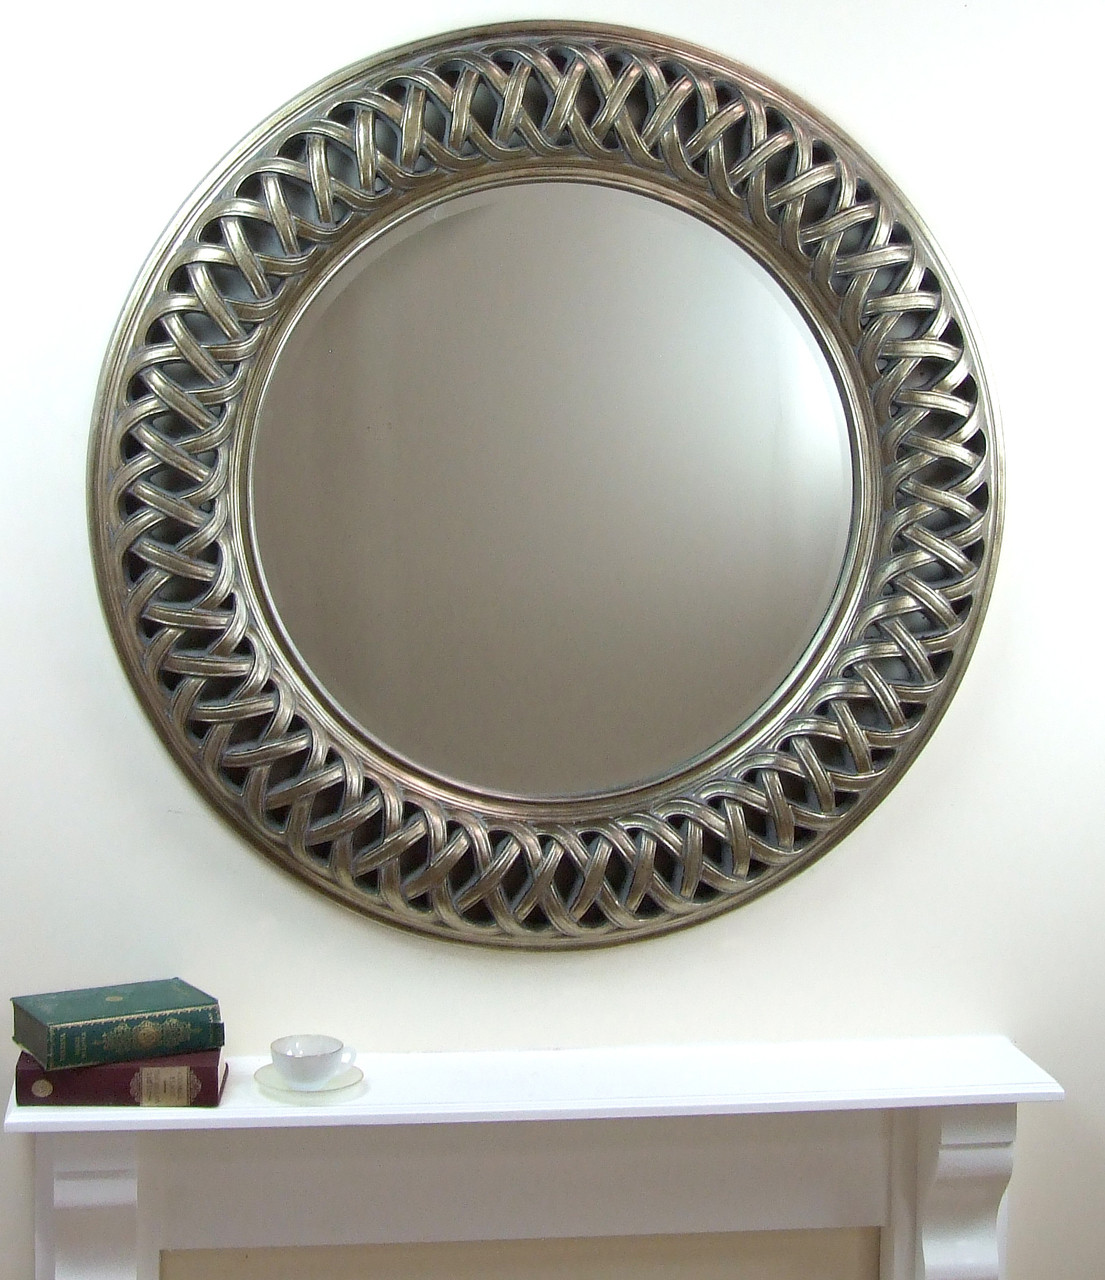 Venice Very Large Round Wall Mirror Silver Frame Art Deco